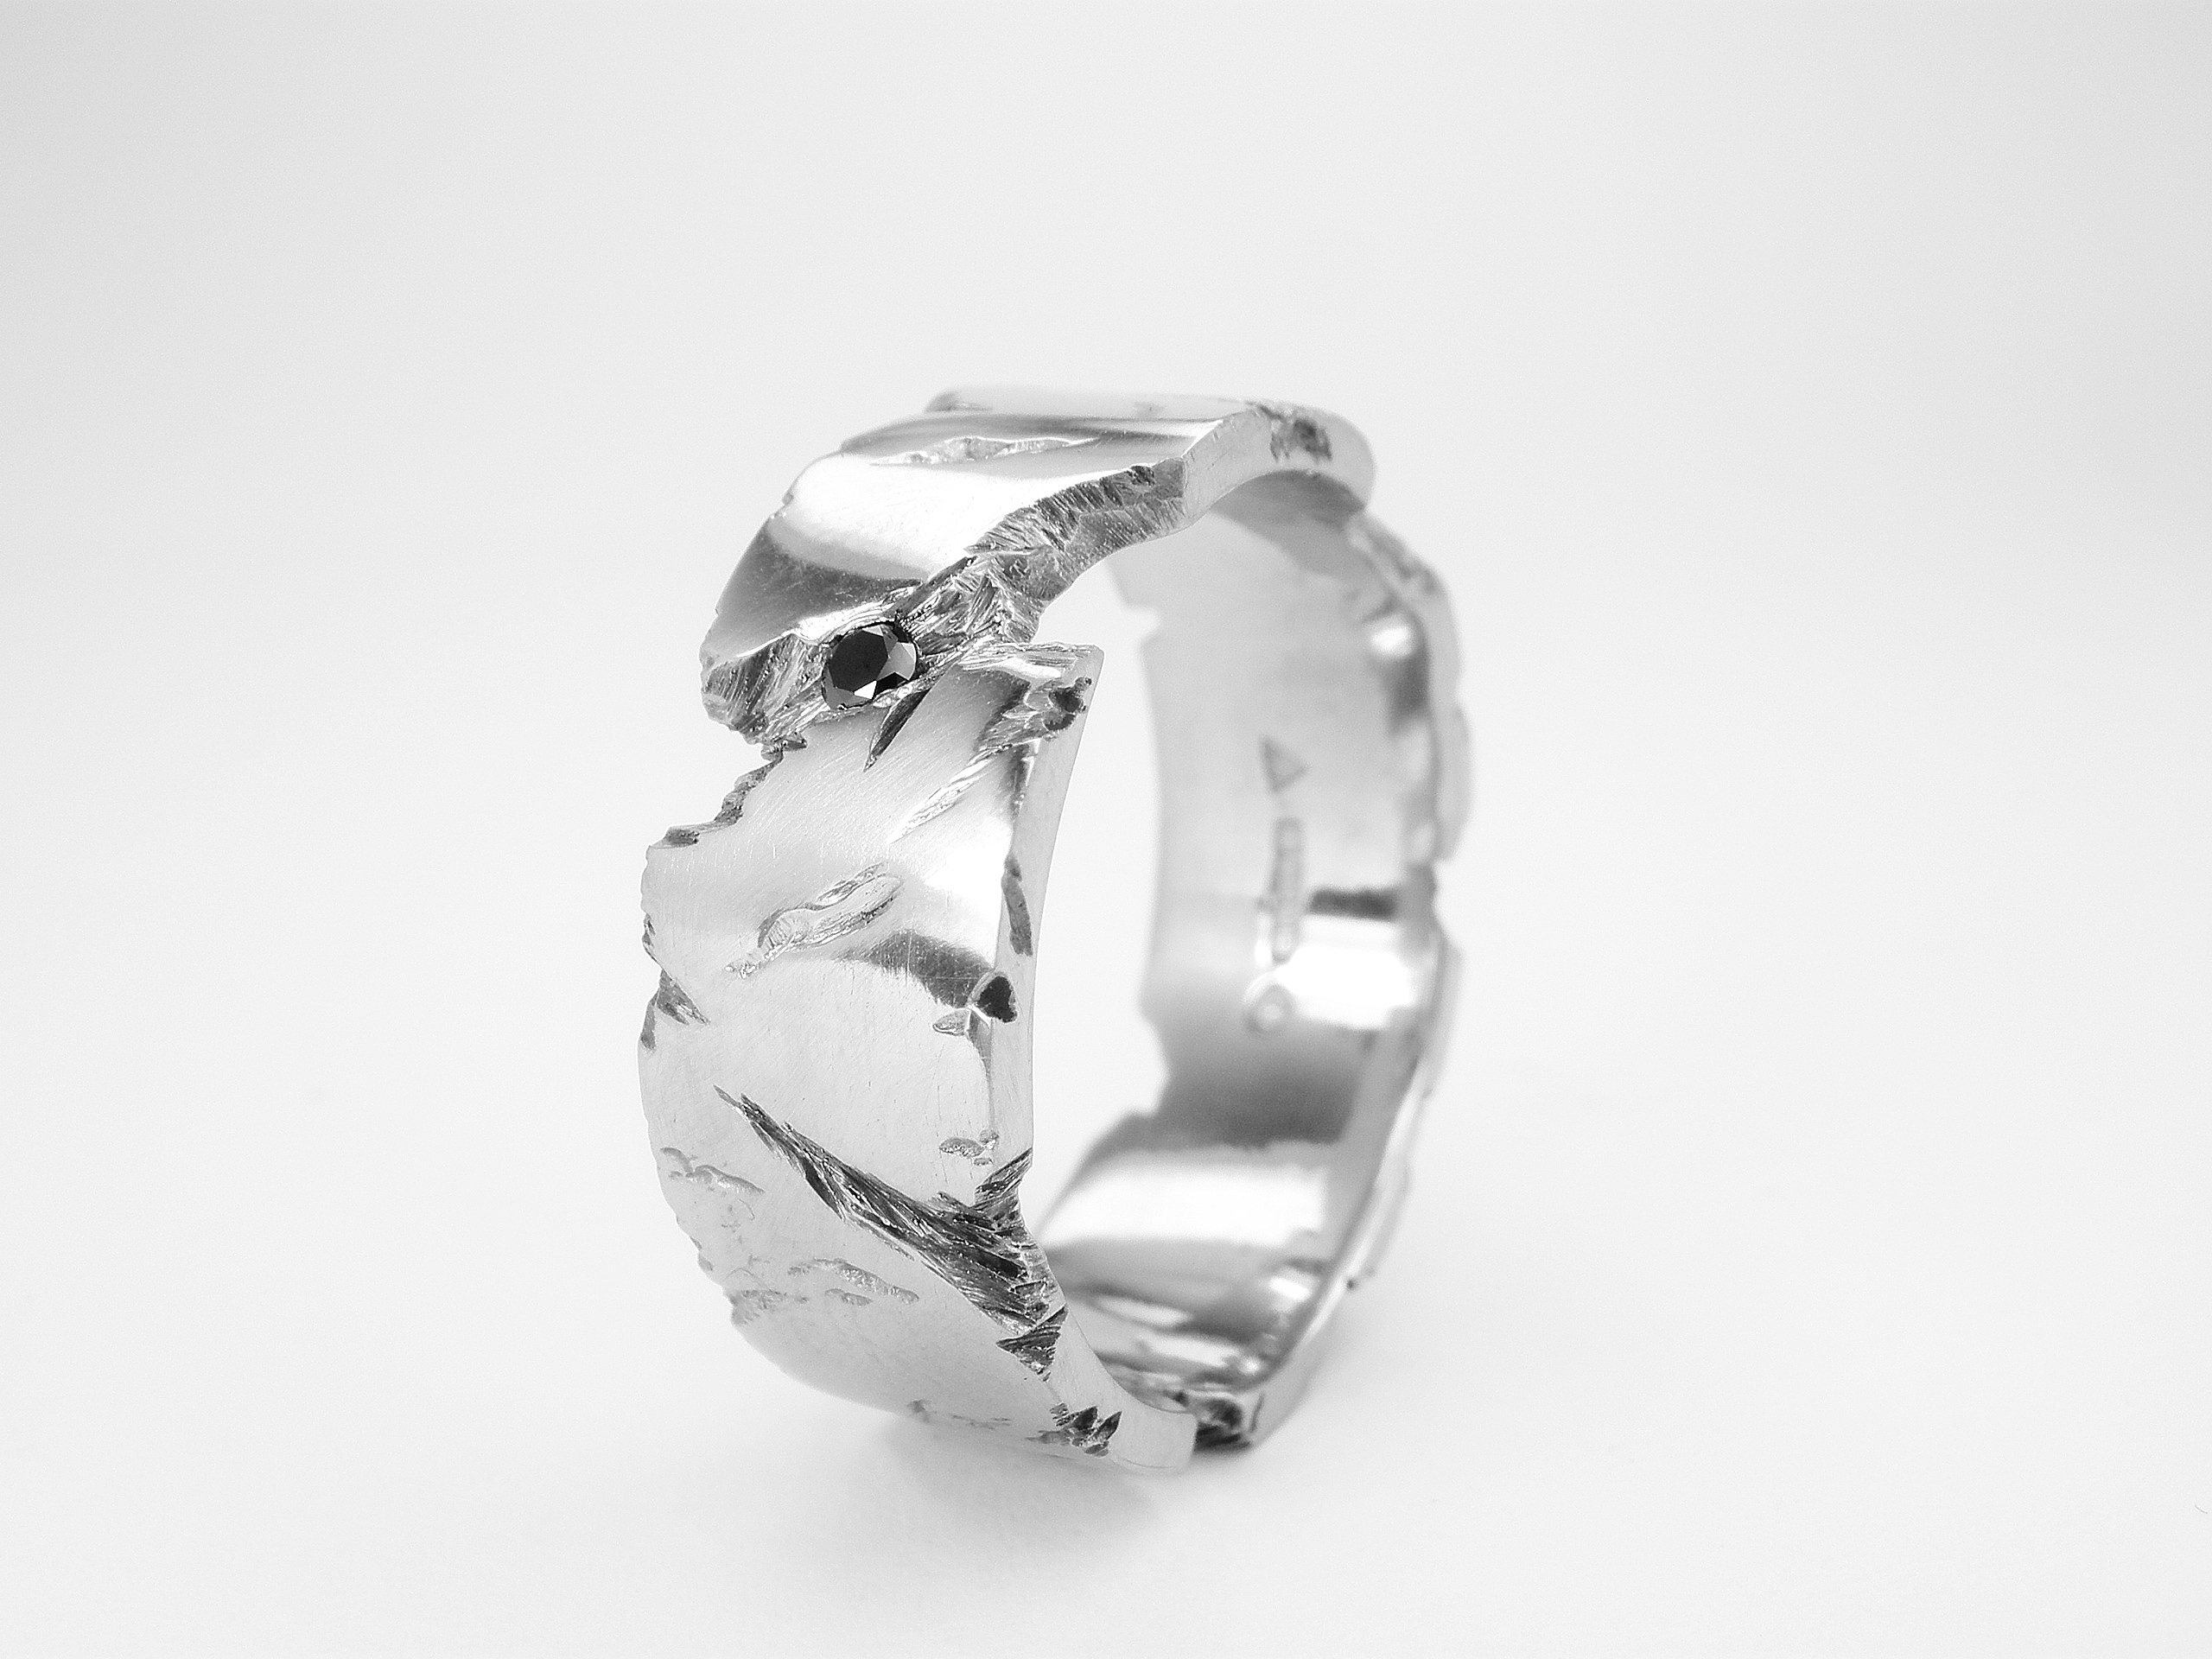 Palladium 'Fractured Rock' effect gents ring set with single black diamond & darkened in the recesses.